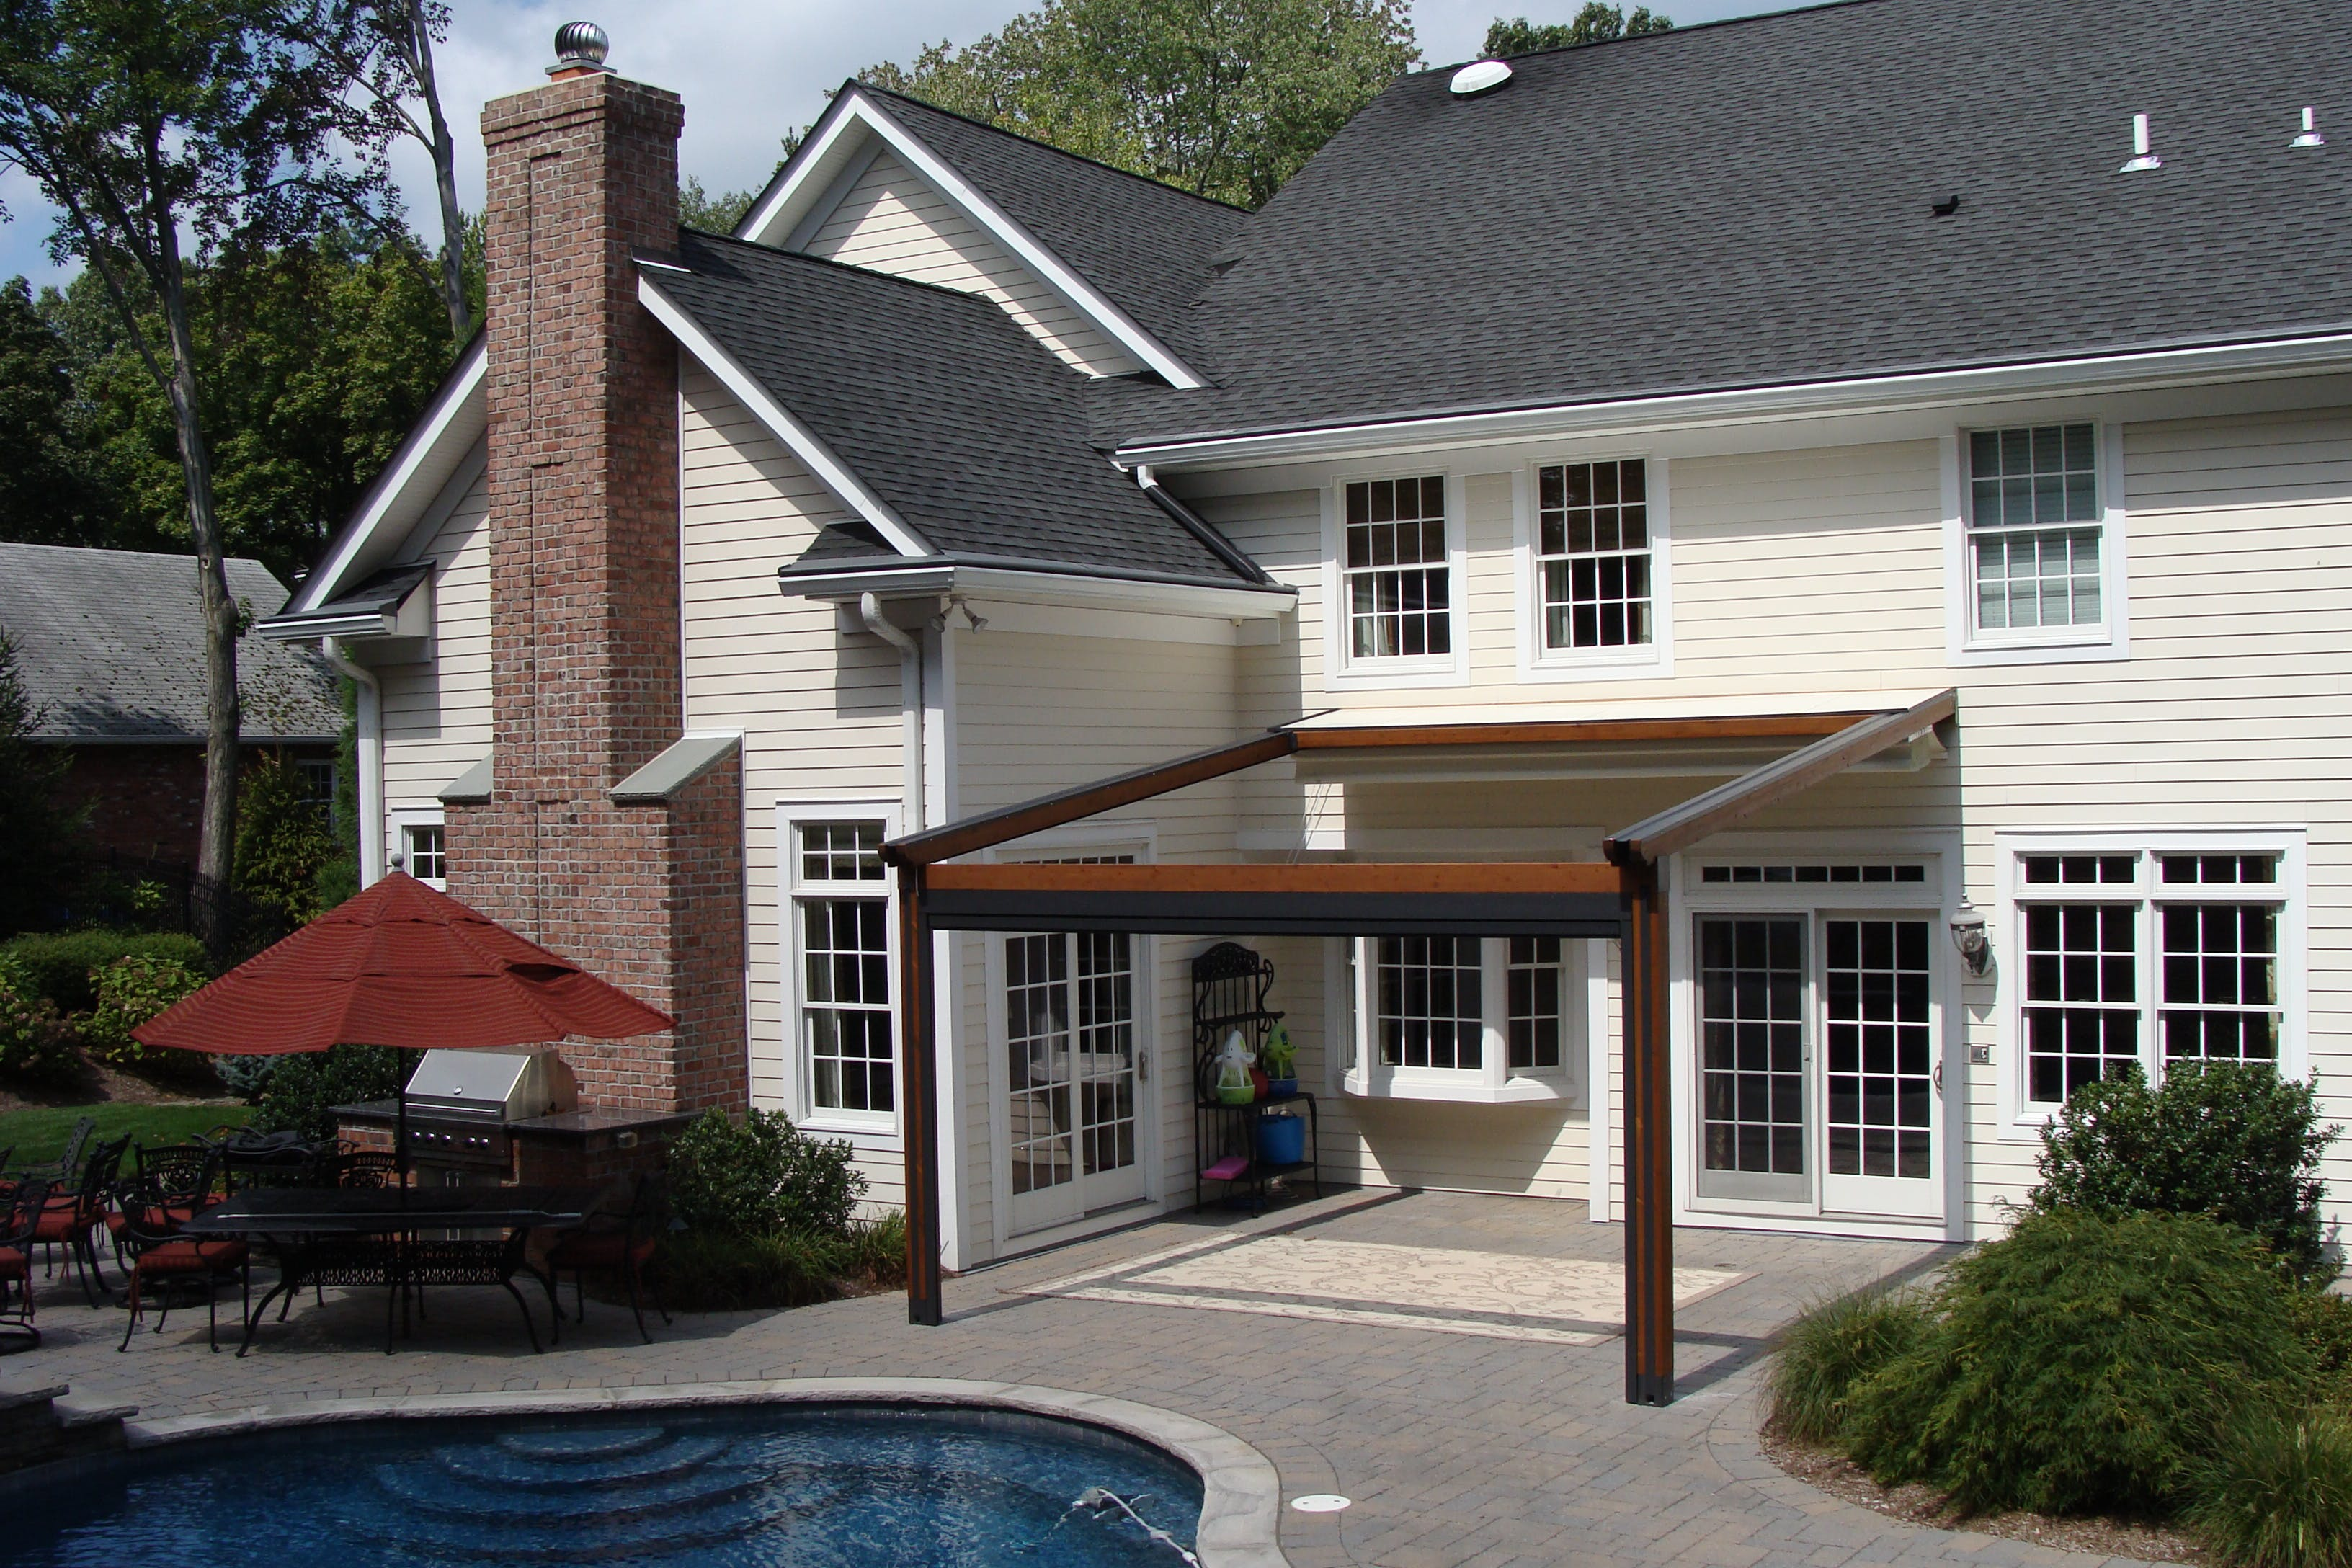 awnings tube it in be retractable nj awning your fully closed is pin a can when